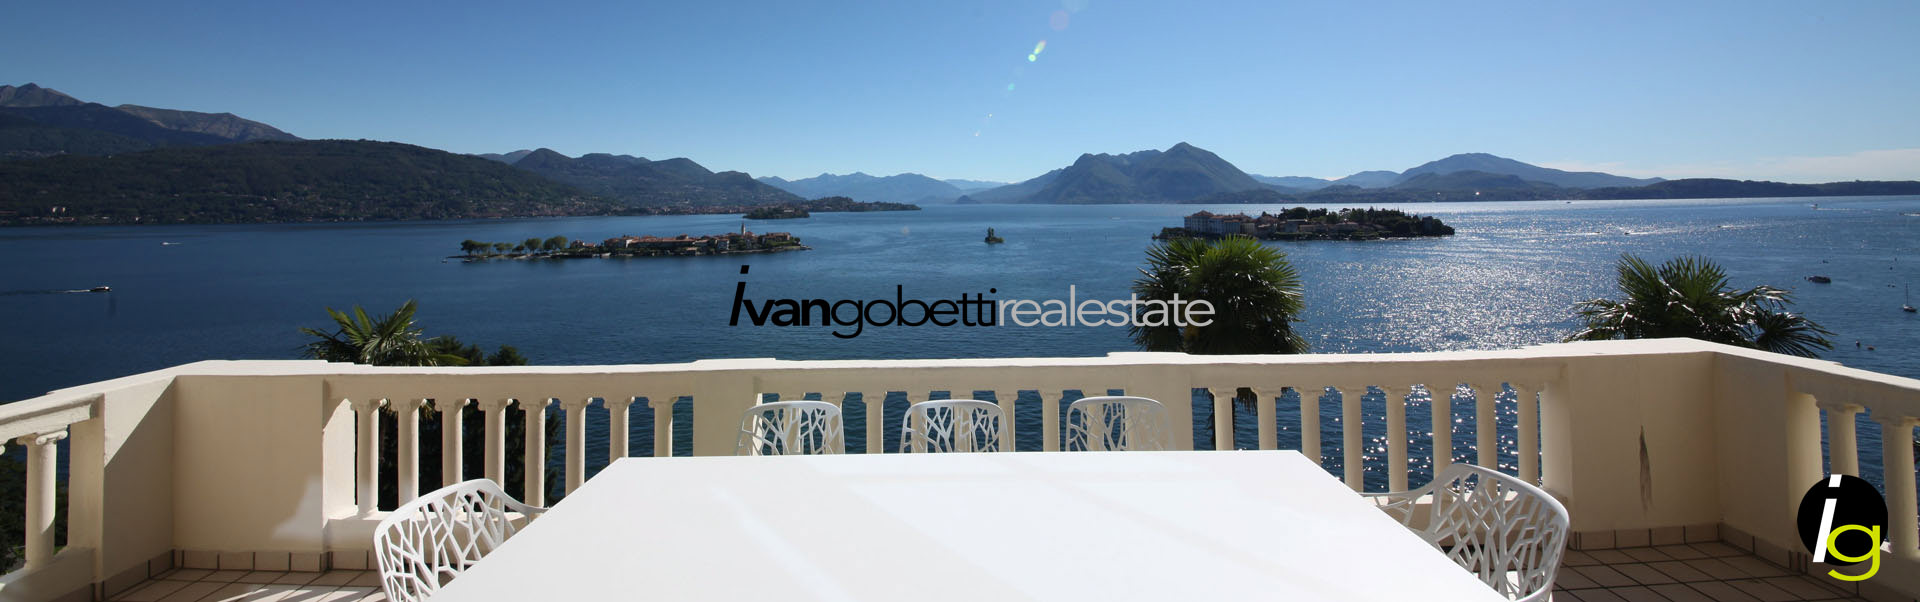 Apartment with swimming pool and view of Lake Maggiore &nbsp; &nbsp; &nbsp; &nbsp;<span>Product code : 4821<br/>Apartment with swimming pool, in one of the most prestigious historic villas of Lake Maggiore, with breathtaking views on the Borromeo Gulf, with park and &nbsp;[...]